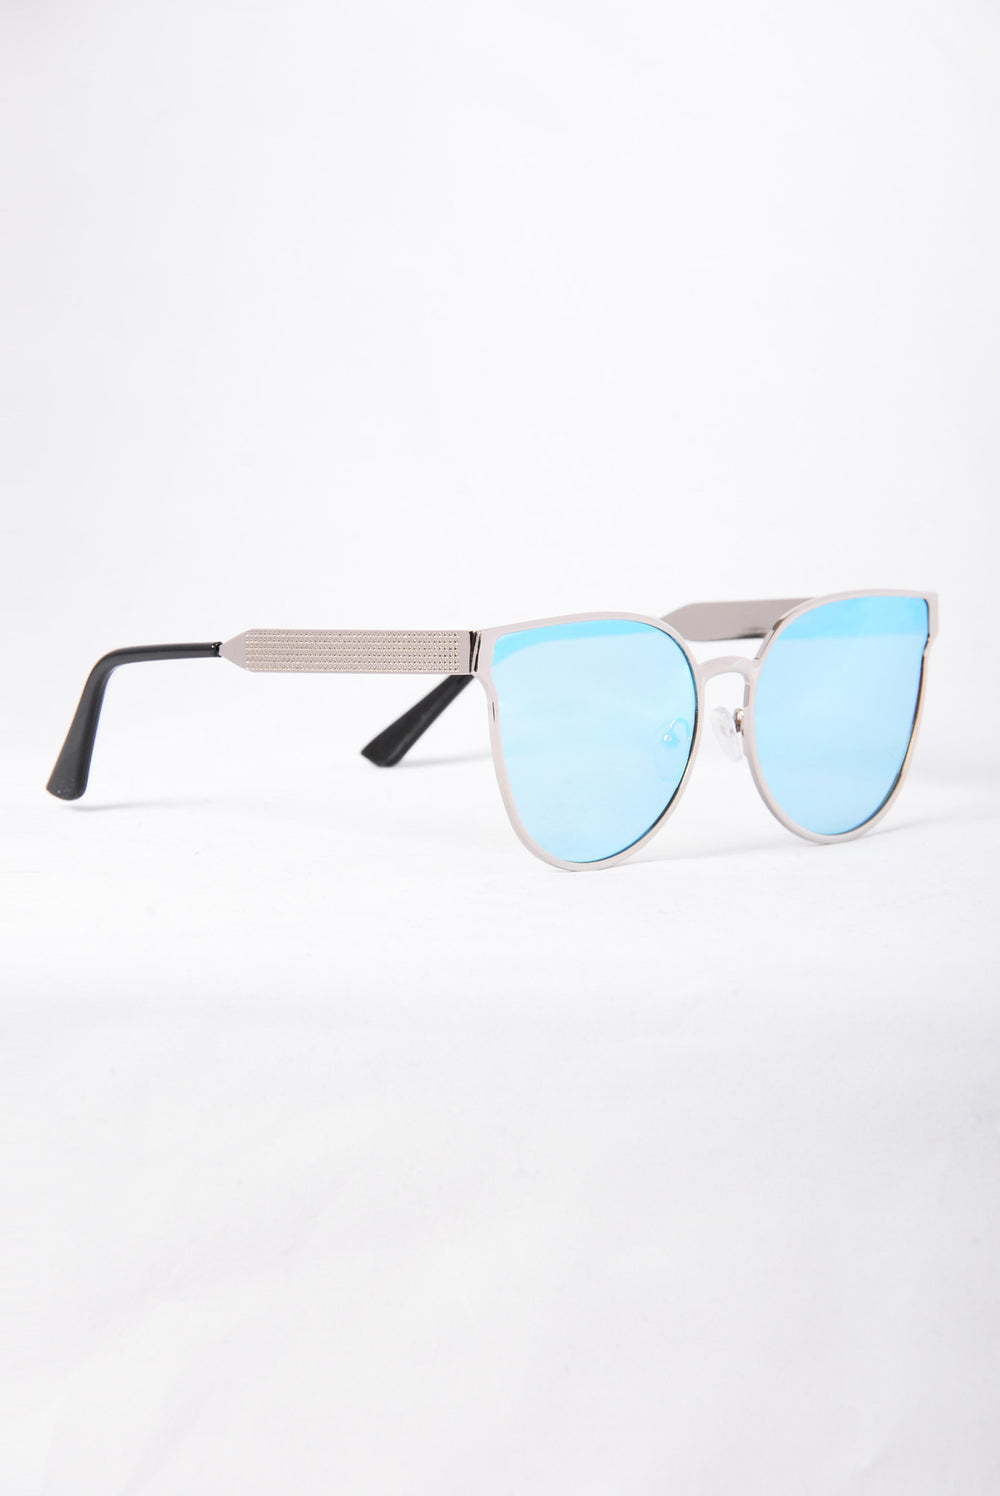 Colombia Sunglasses - Gold/Blue